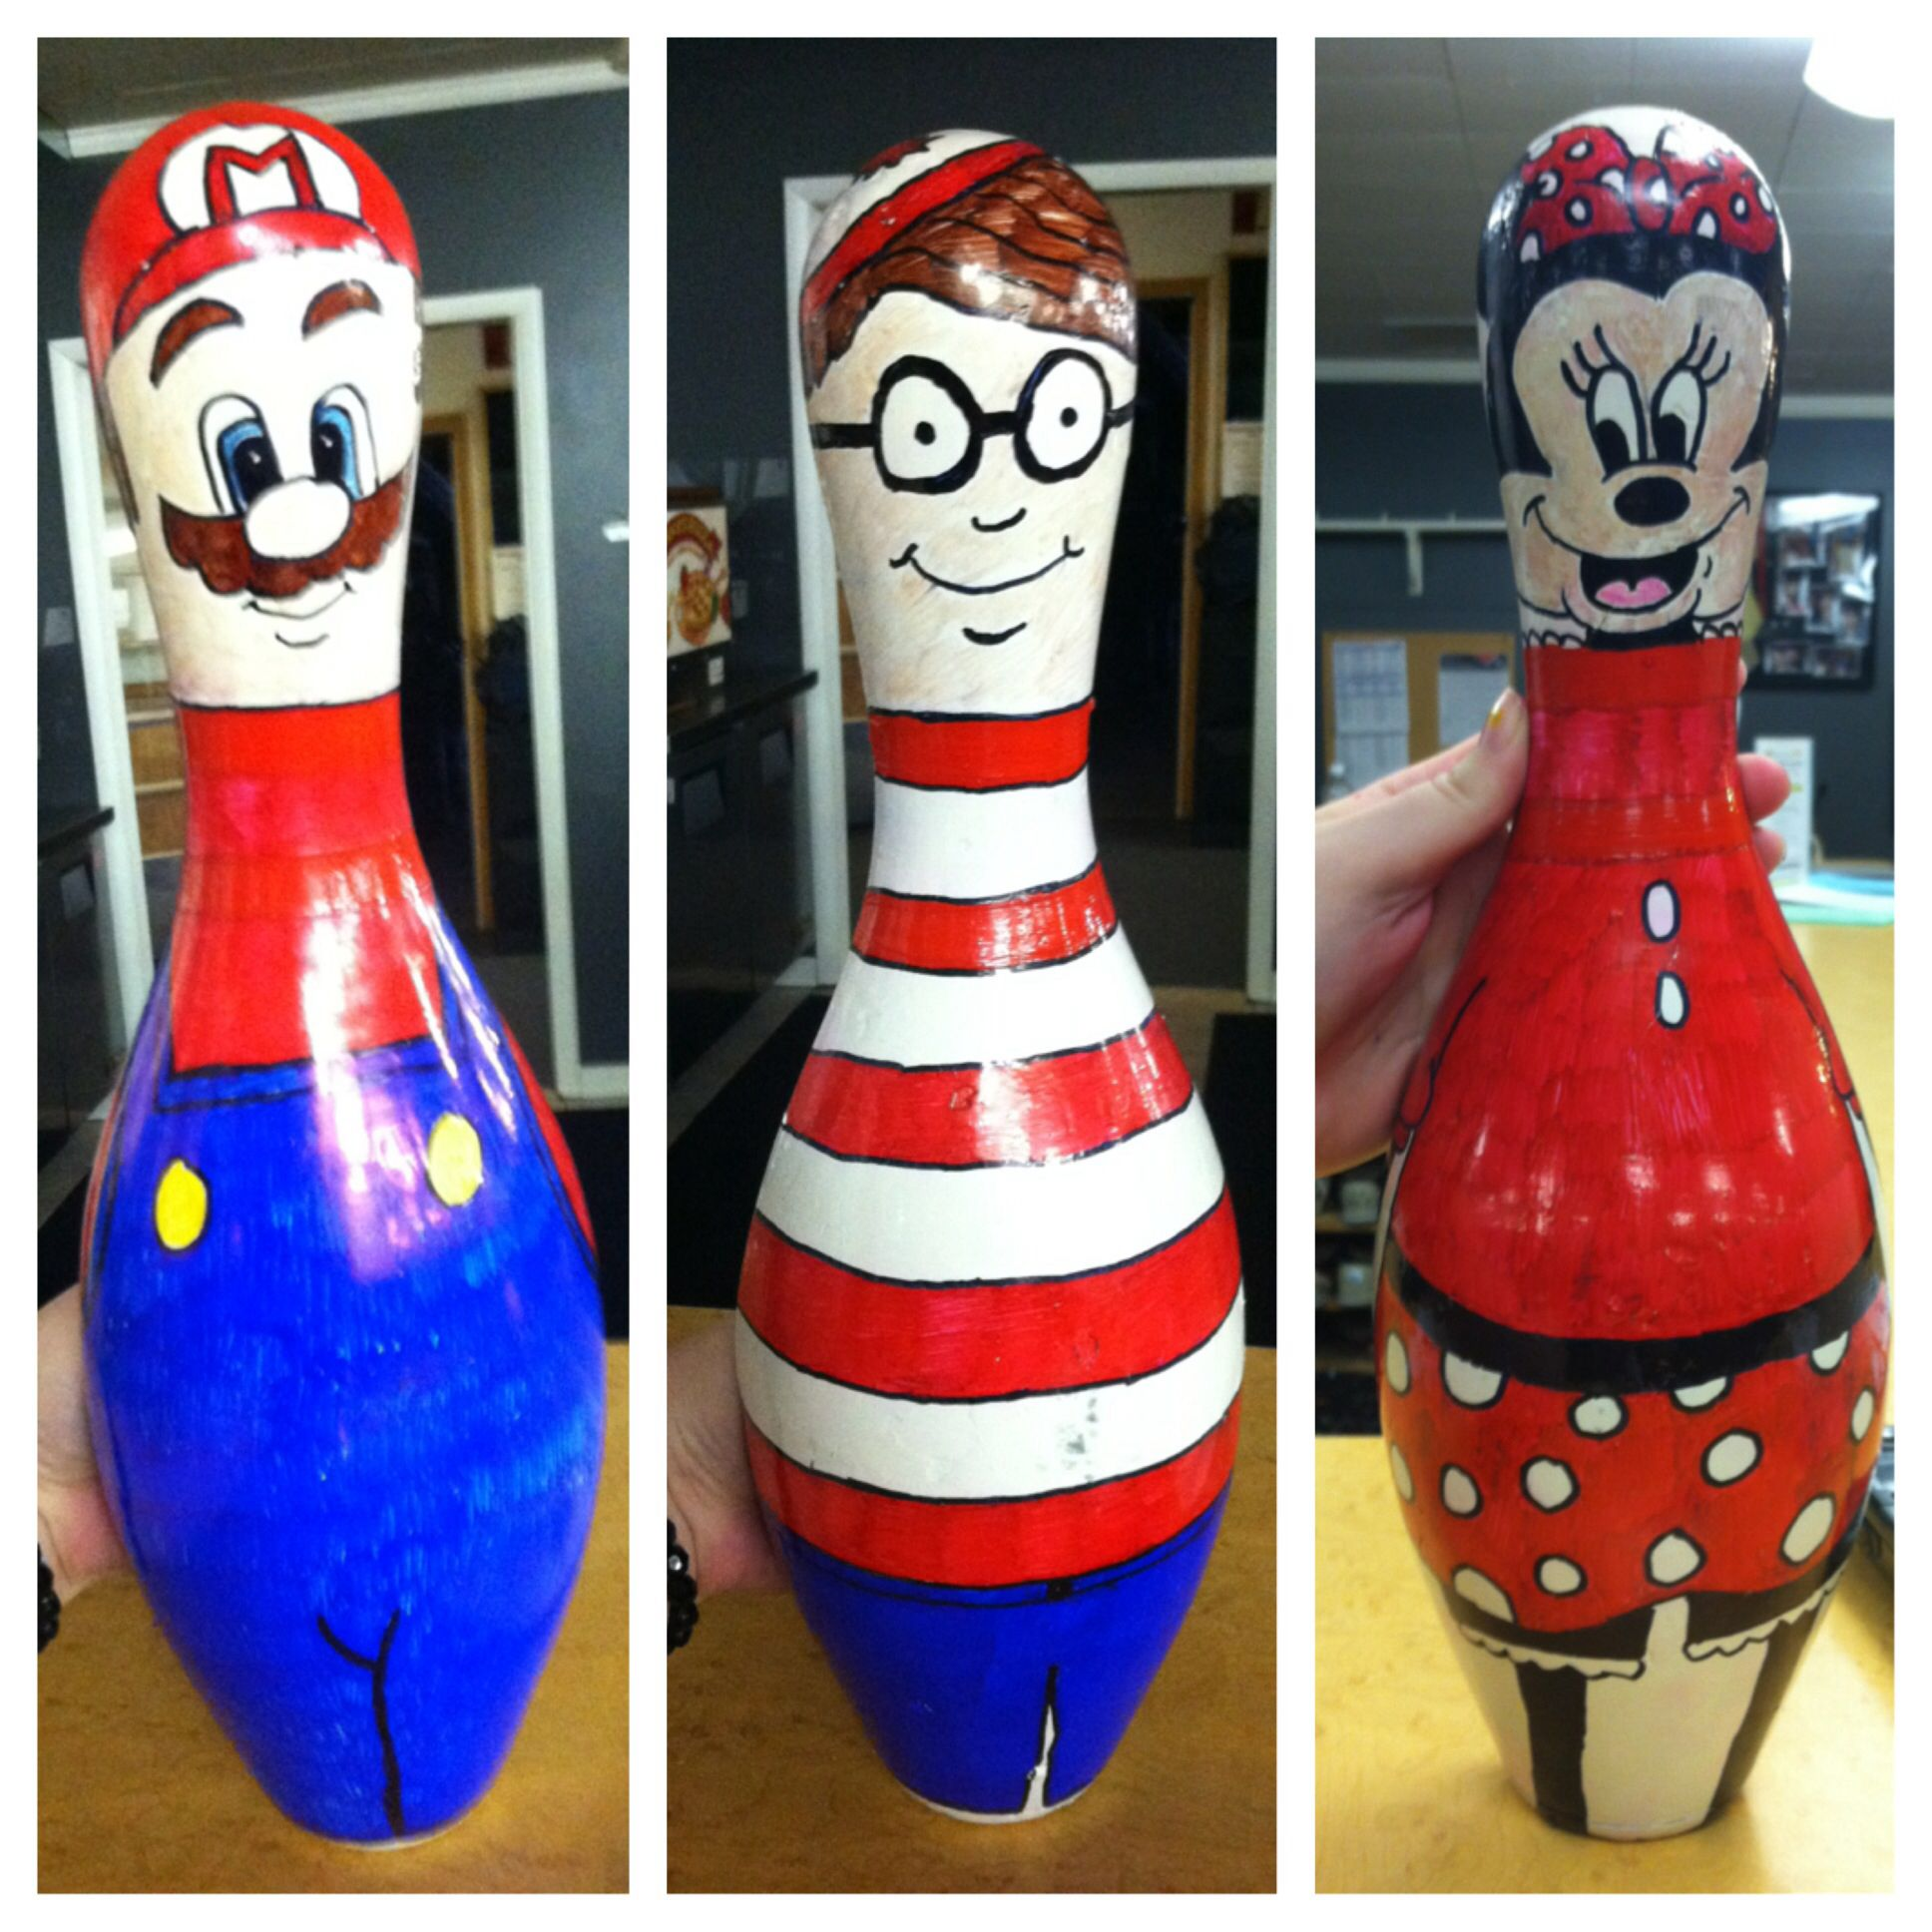 mario waldo and minnie mouse bowling pin decorations for the party